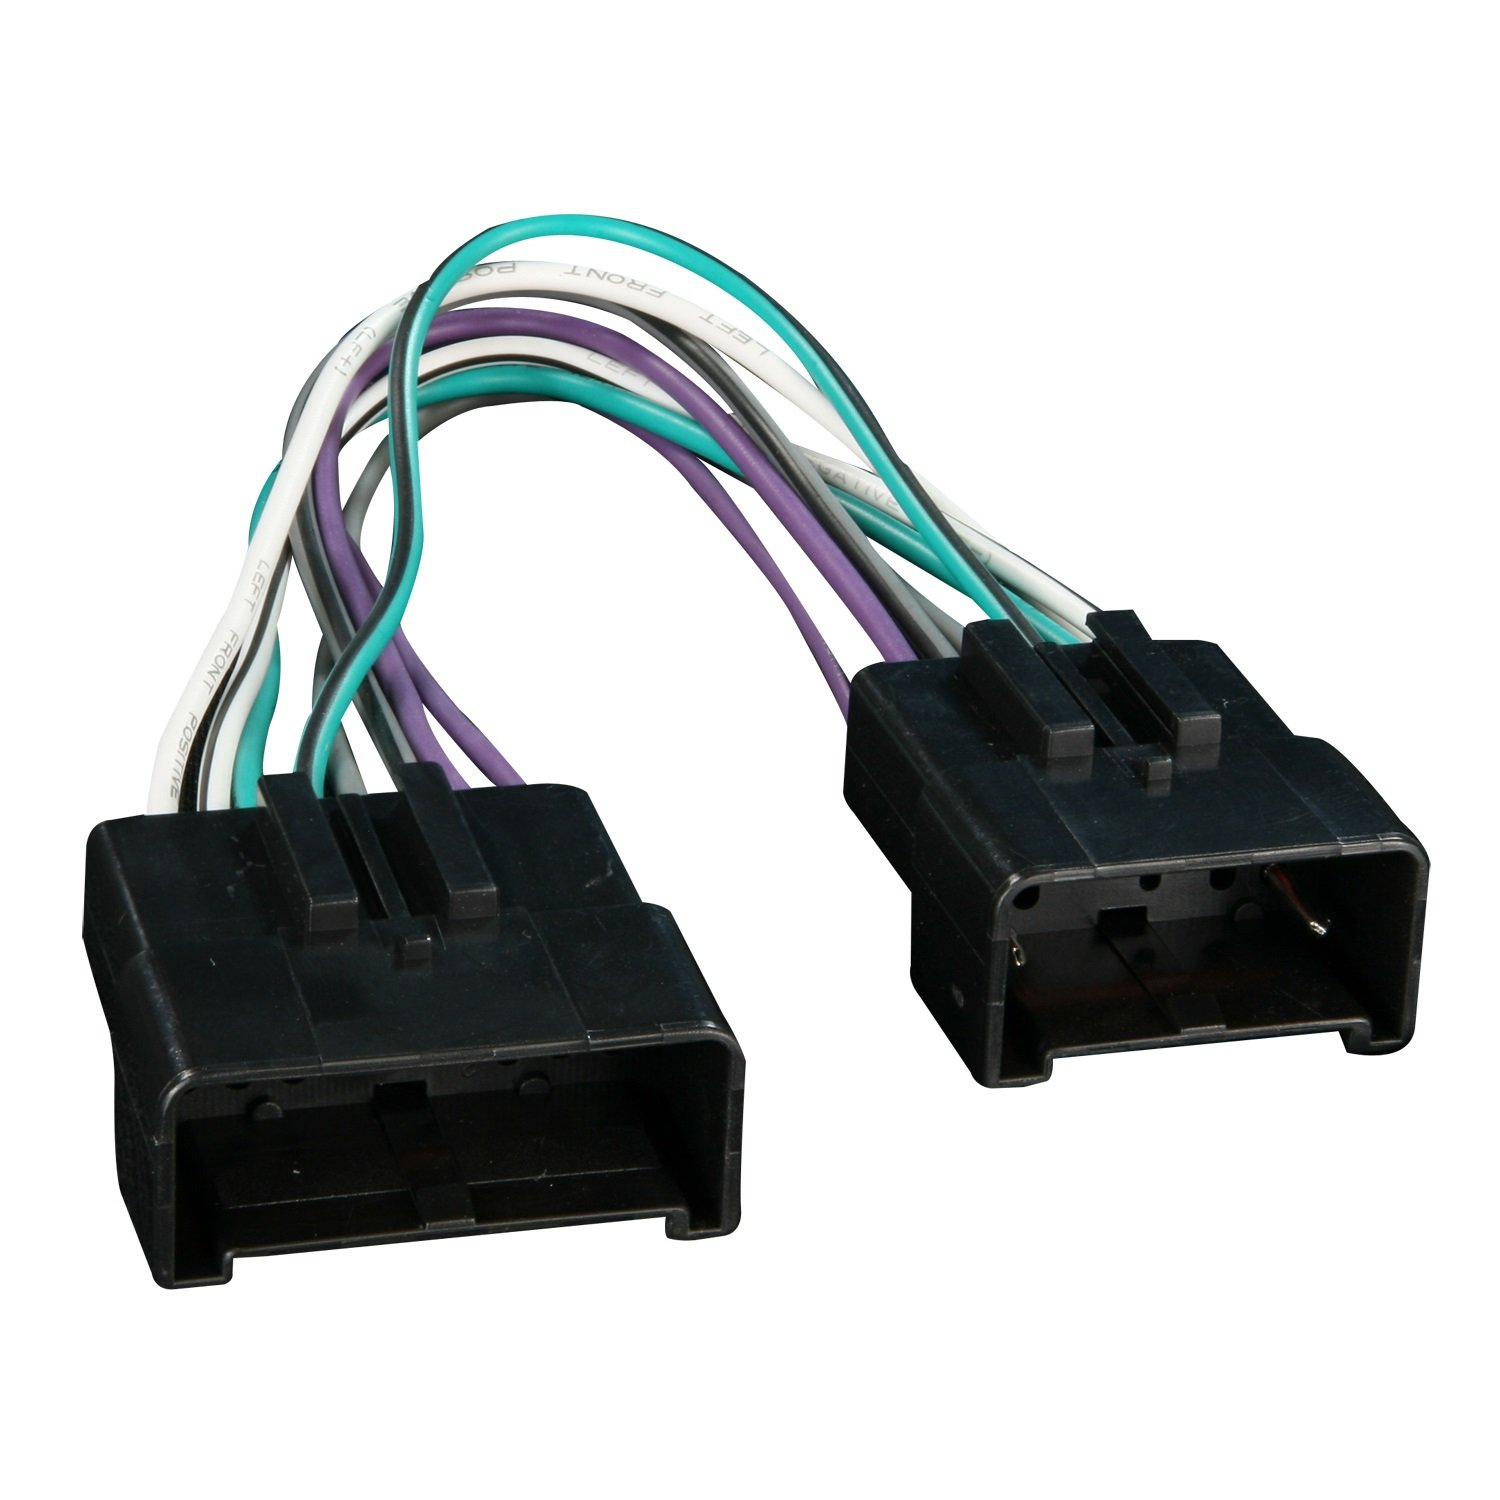 71pSHbvTl0L._SL1500_ amazon com metra 70 5513 radio wiring harness for ford amplifier Dash Kit for F150 at cos-gaming.co